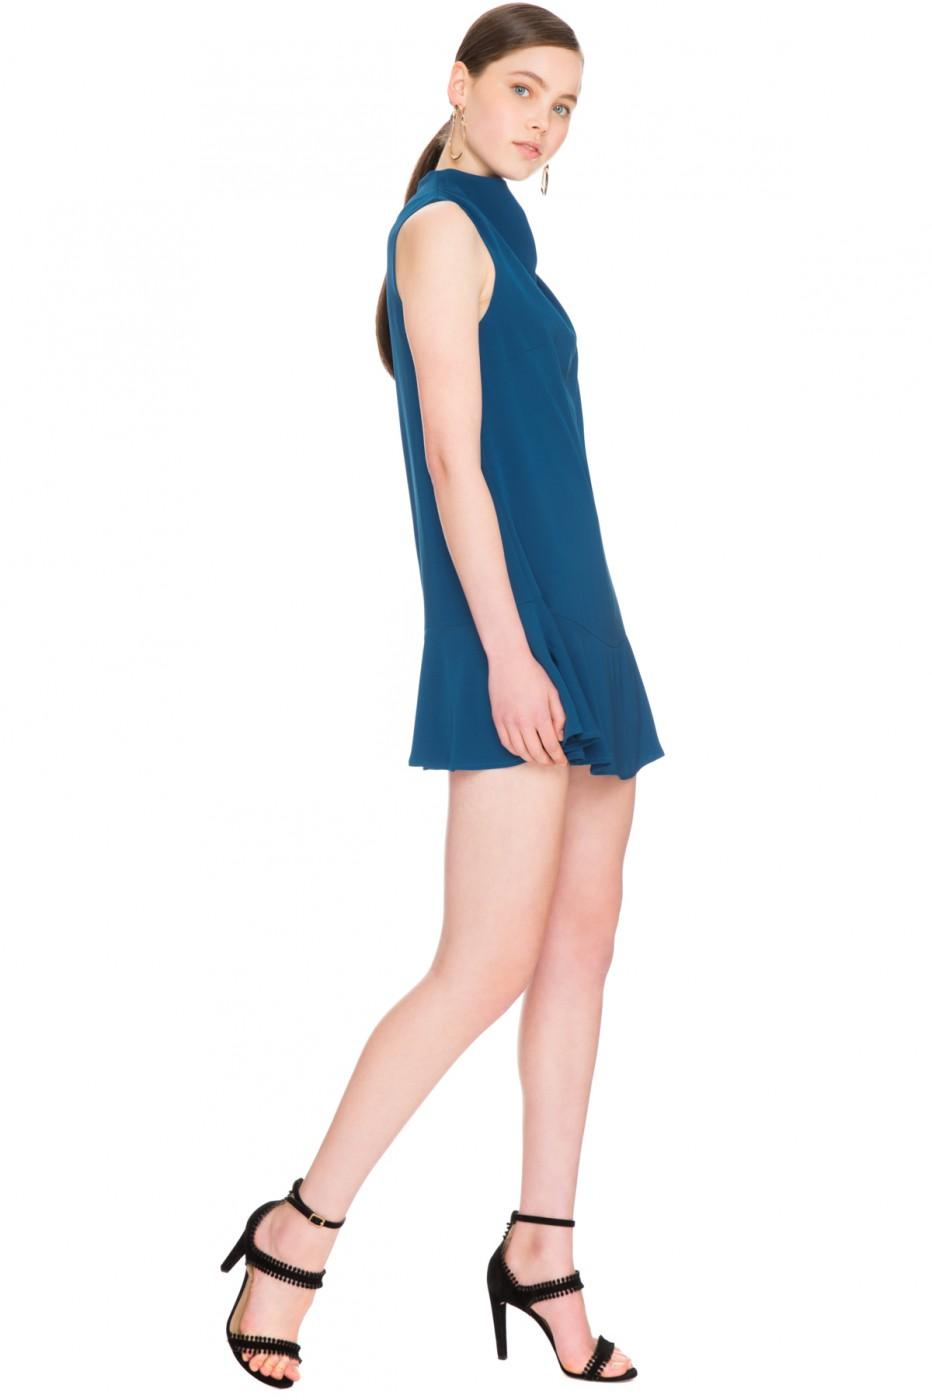 Lyst - Keepsake Keepsake True Lies Mini Dress In Marine Blue in Blue